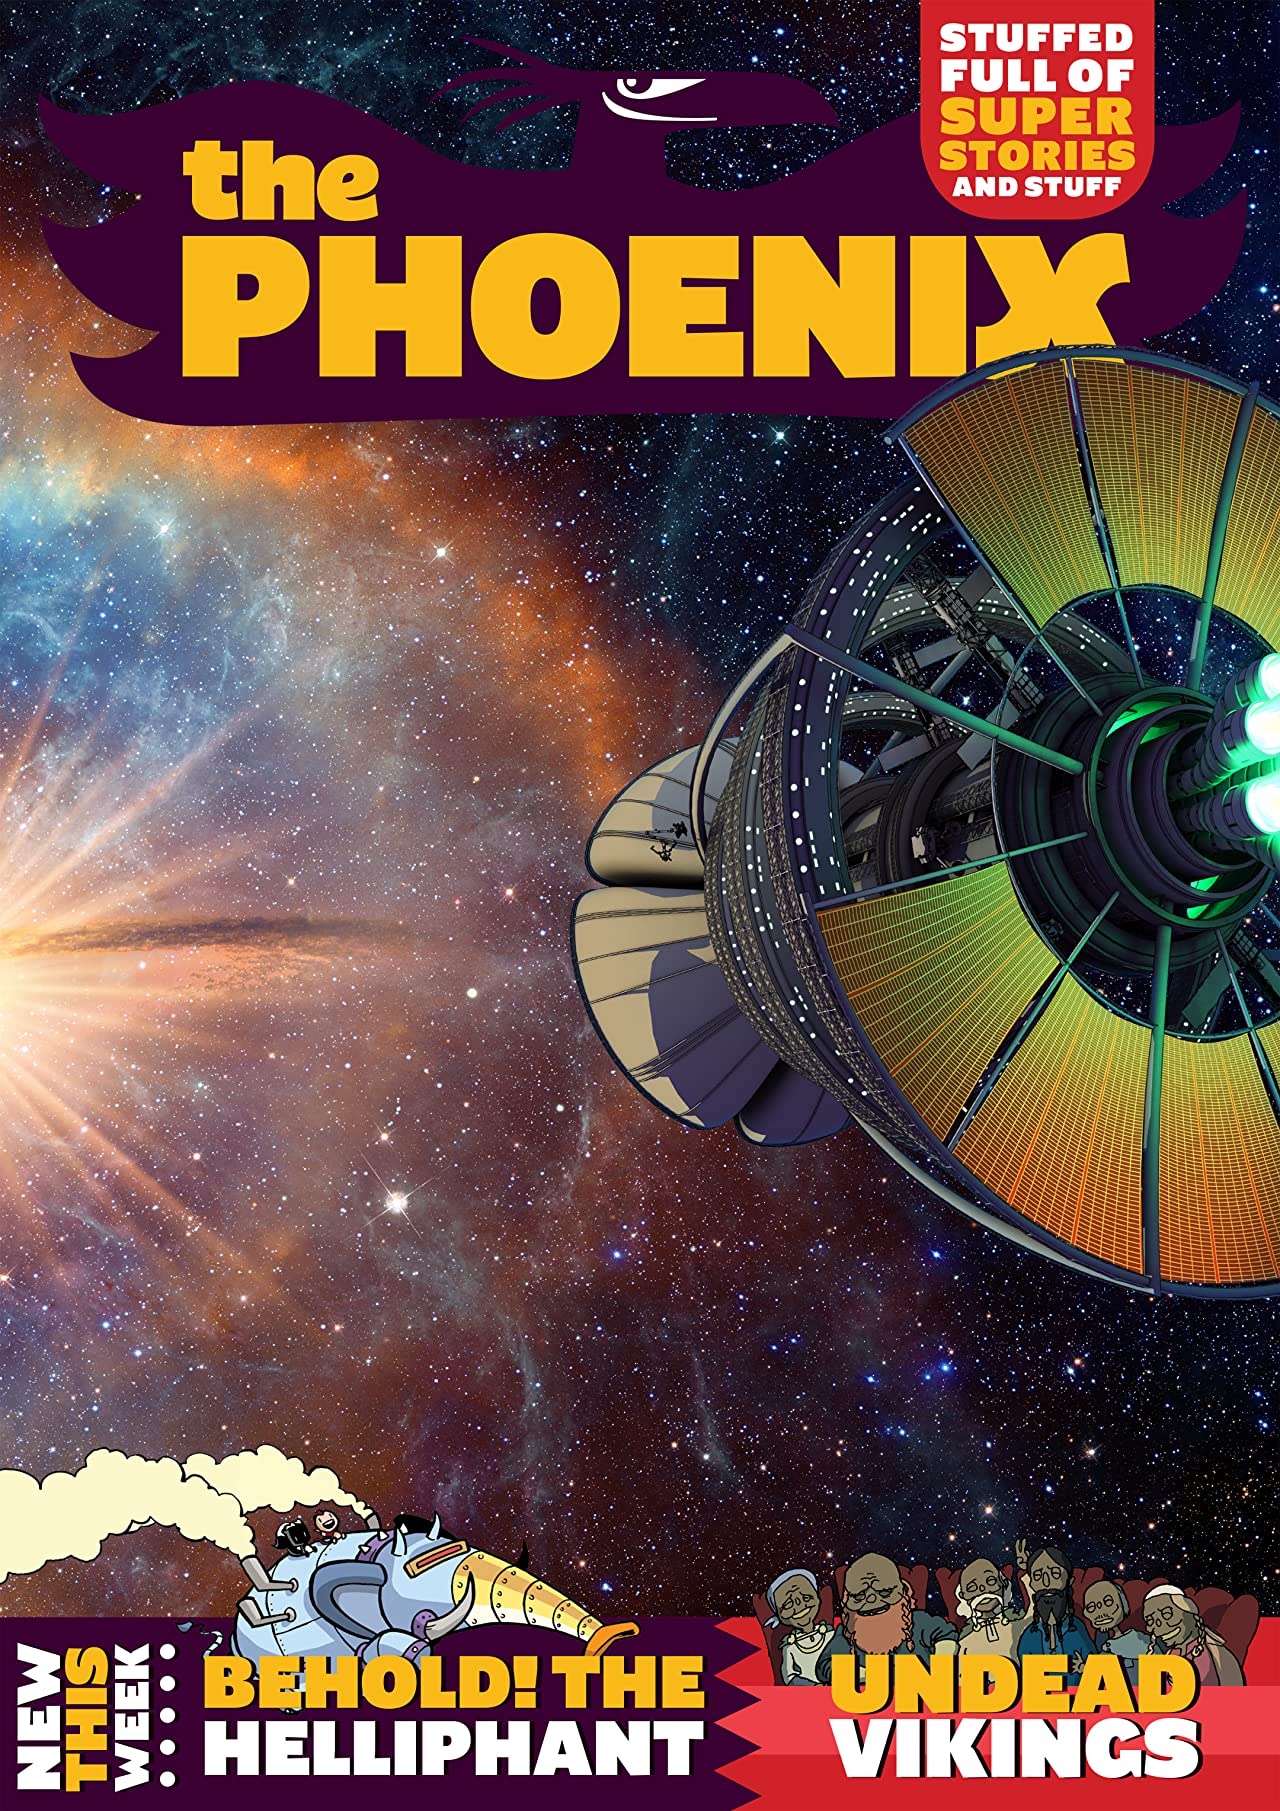 The Phoenix #60: The Weekly Story Comic